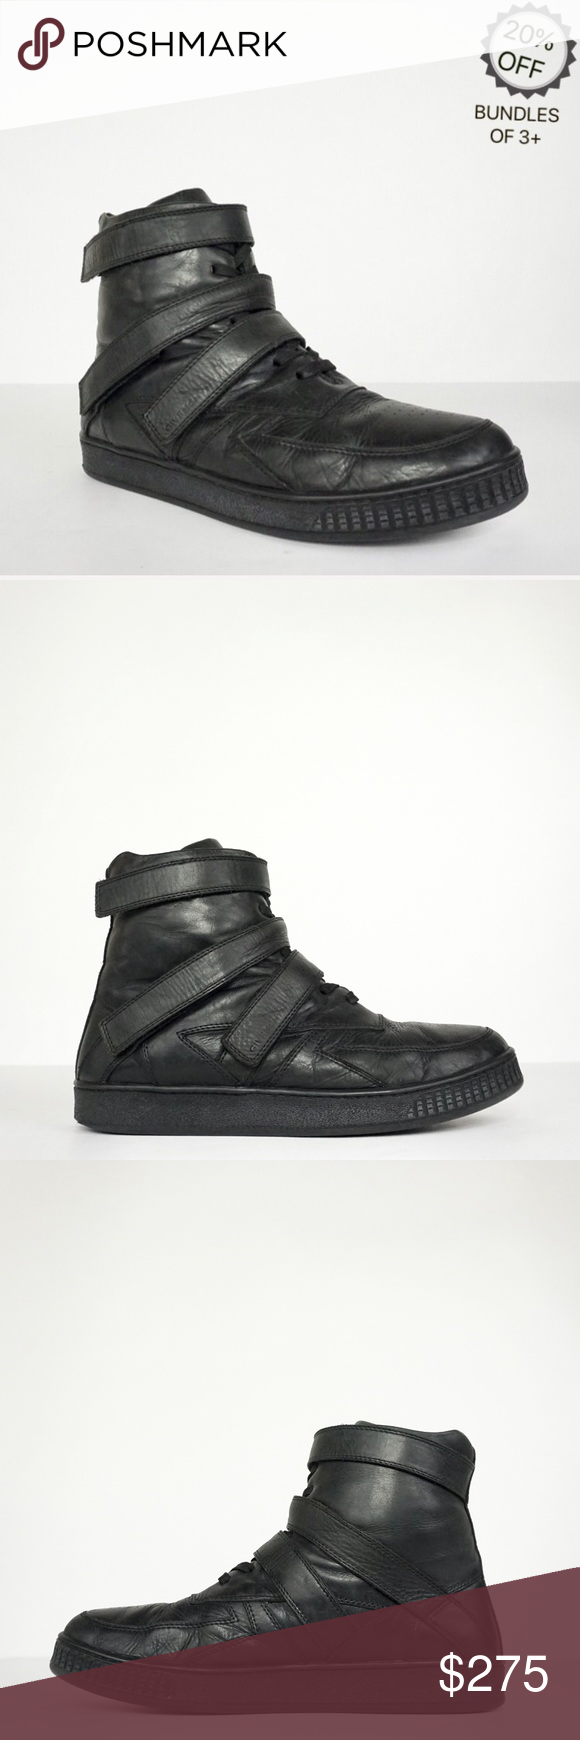 Givenchy   High Top Black Leather Sneakers   42 Givenchy   High Top Black Leather Sneakers   42  Men...